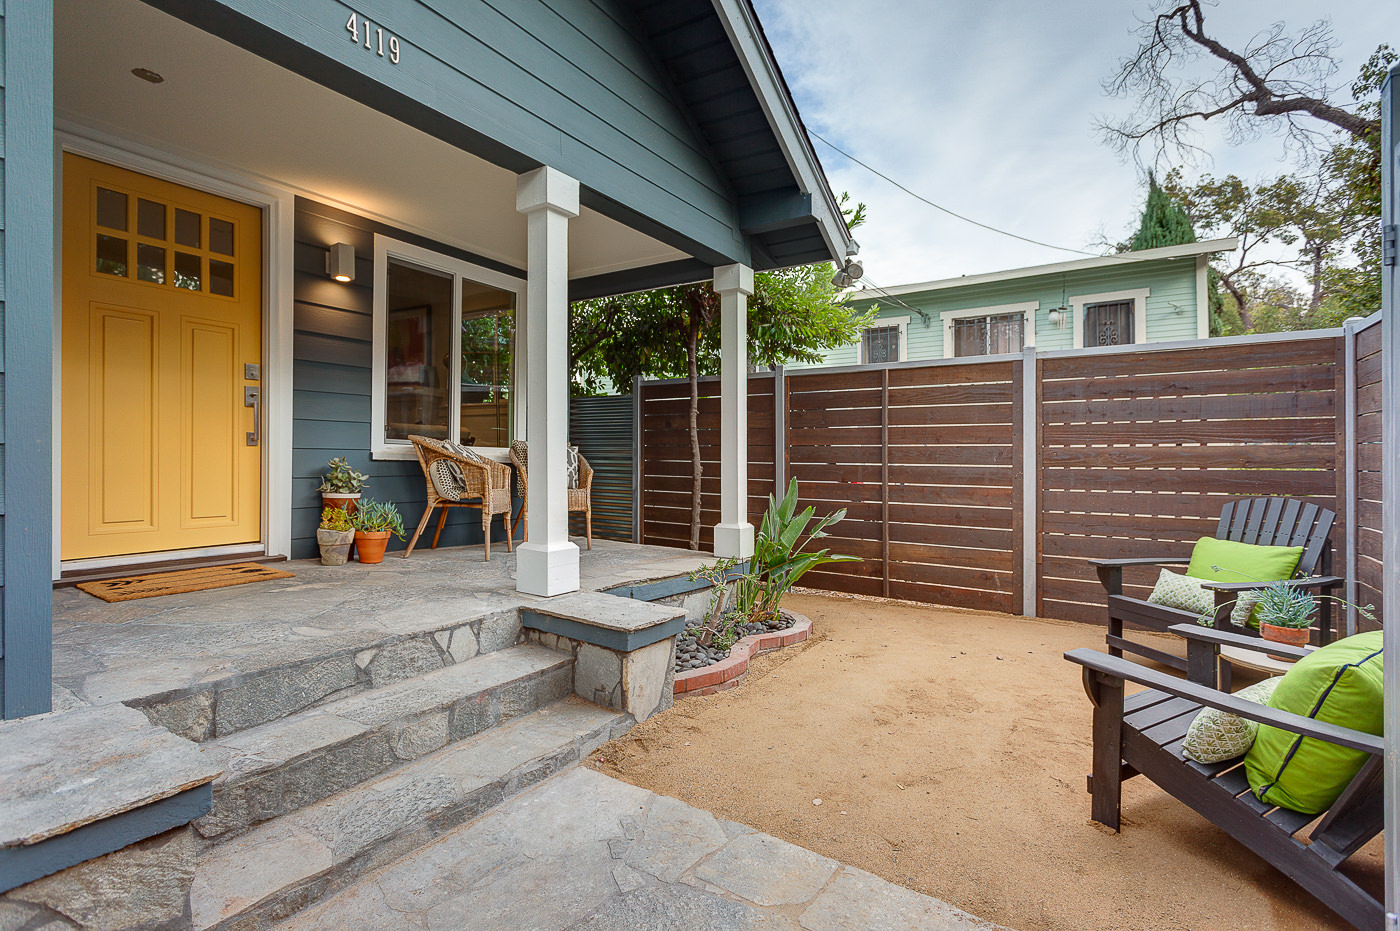 4119 Effie Street, Los Angeles, California, 90029